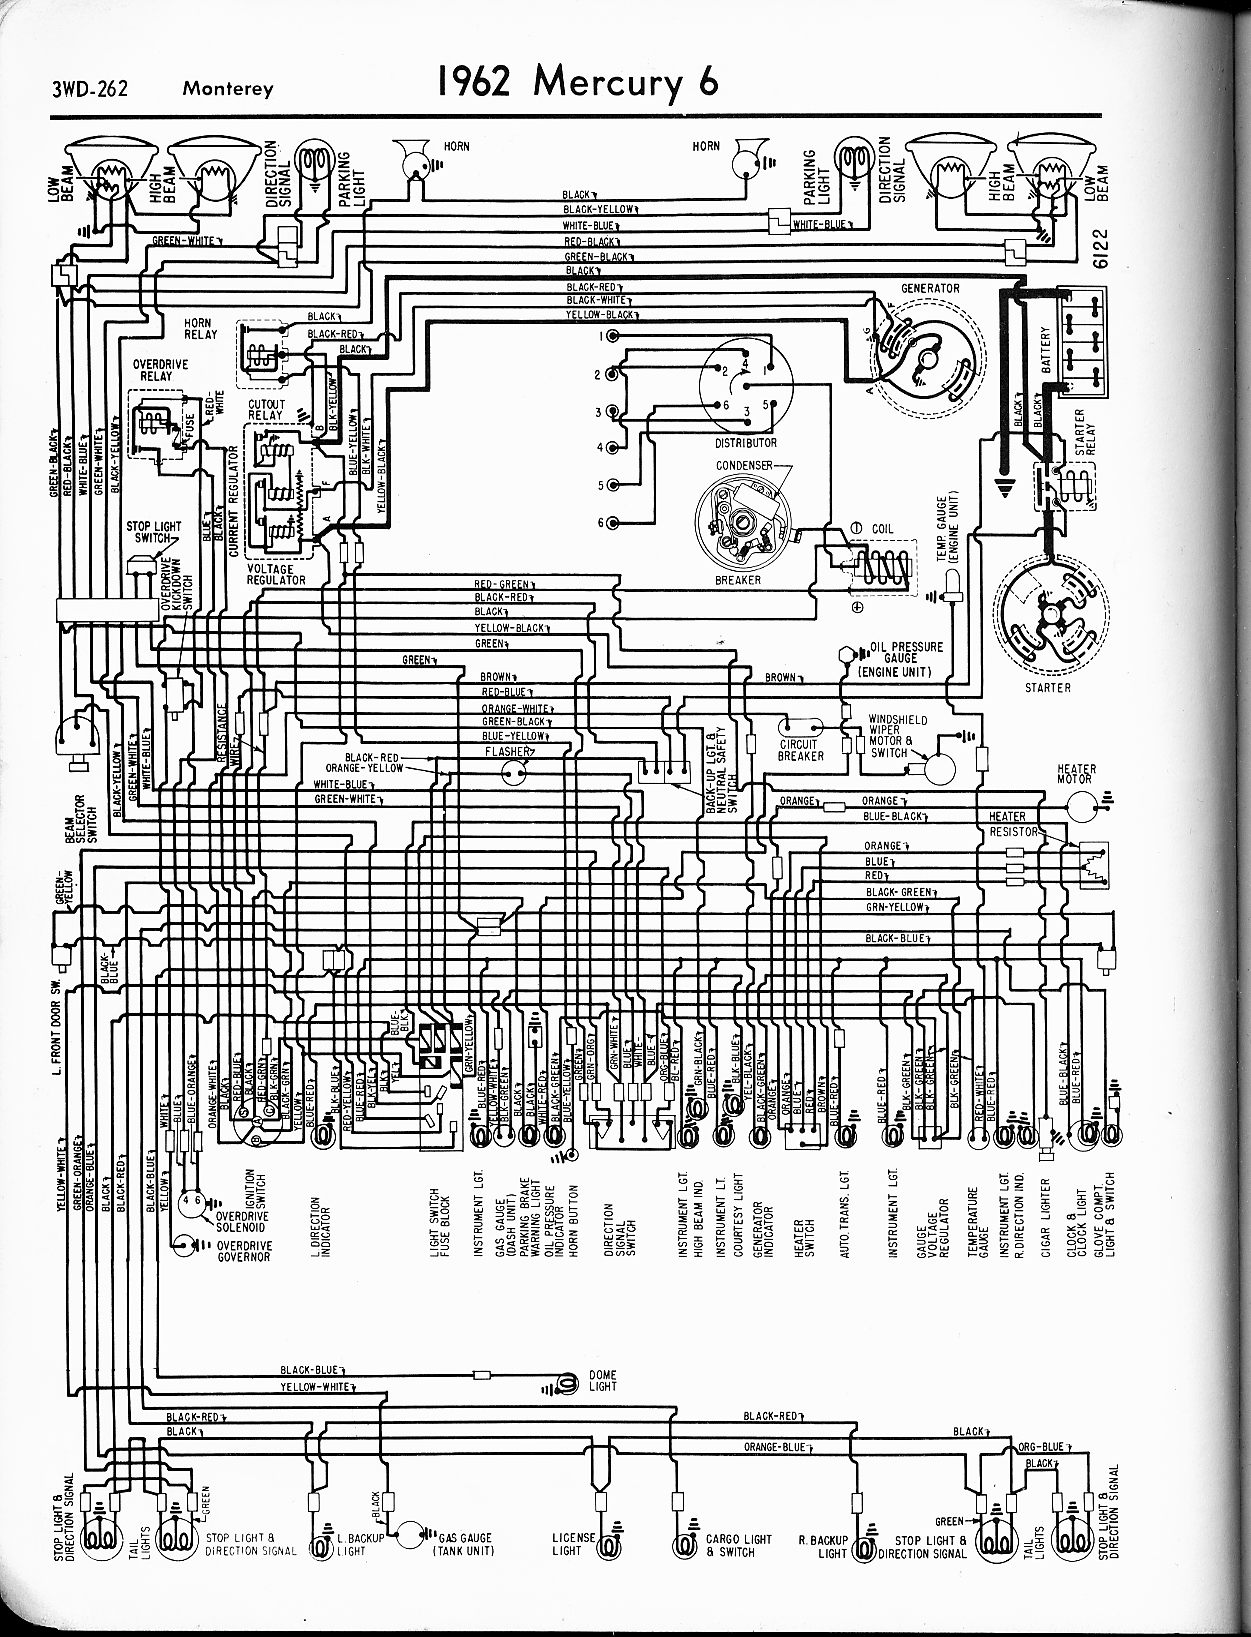 64 Et Wiring Diagram Library 66 Ford Falcon 1962 6 Monterey